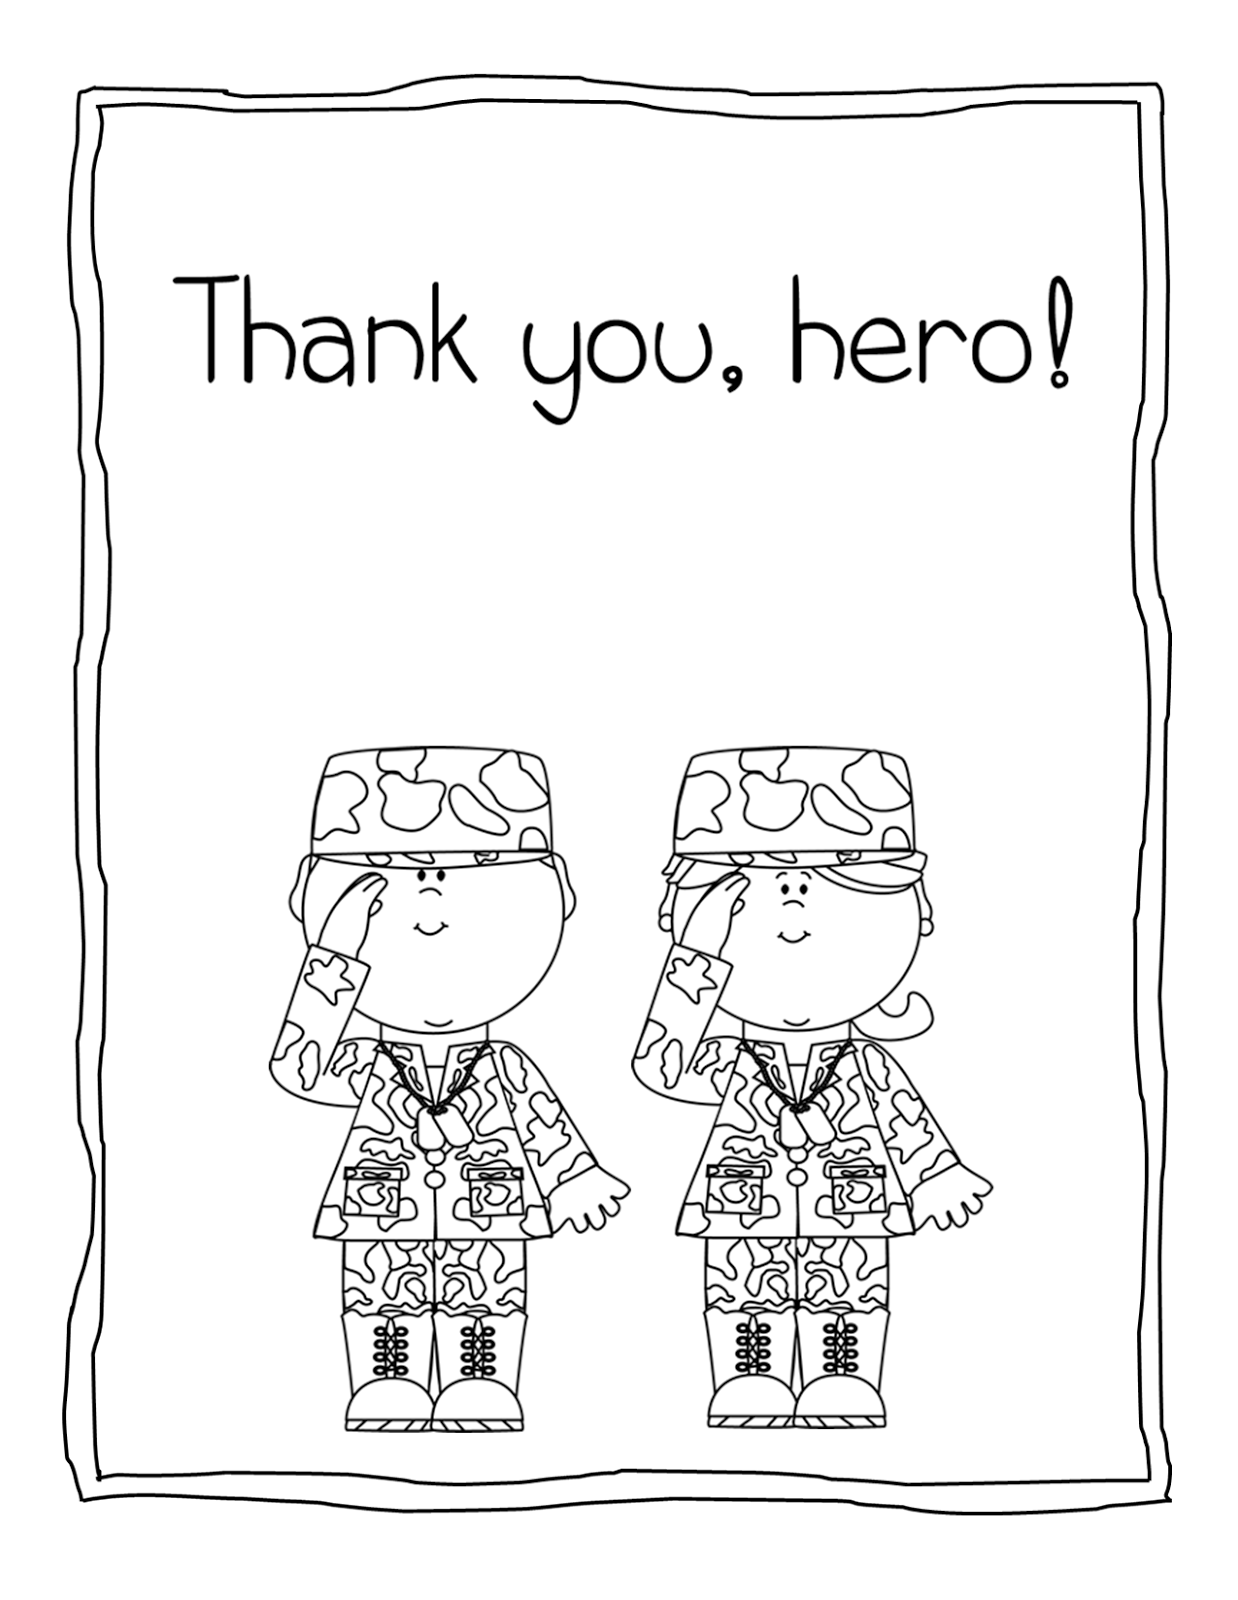 Christmas Coloring Pages For Soldiers With Veterans Day Images 2018 Printable Colouring Sheets